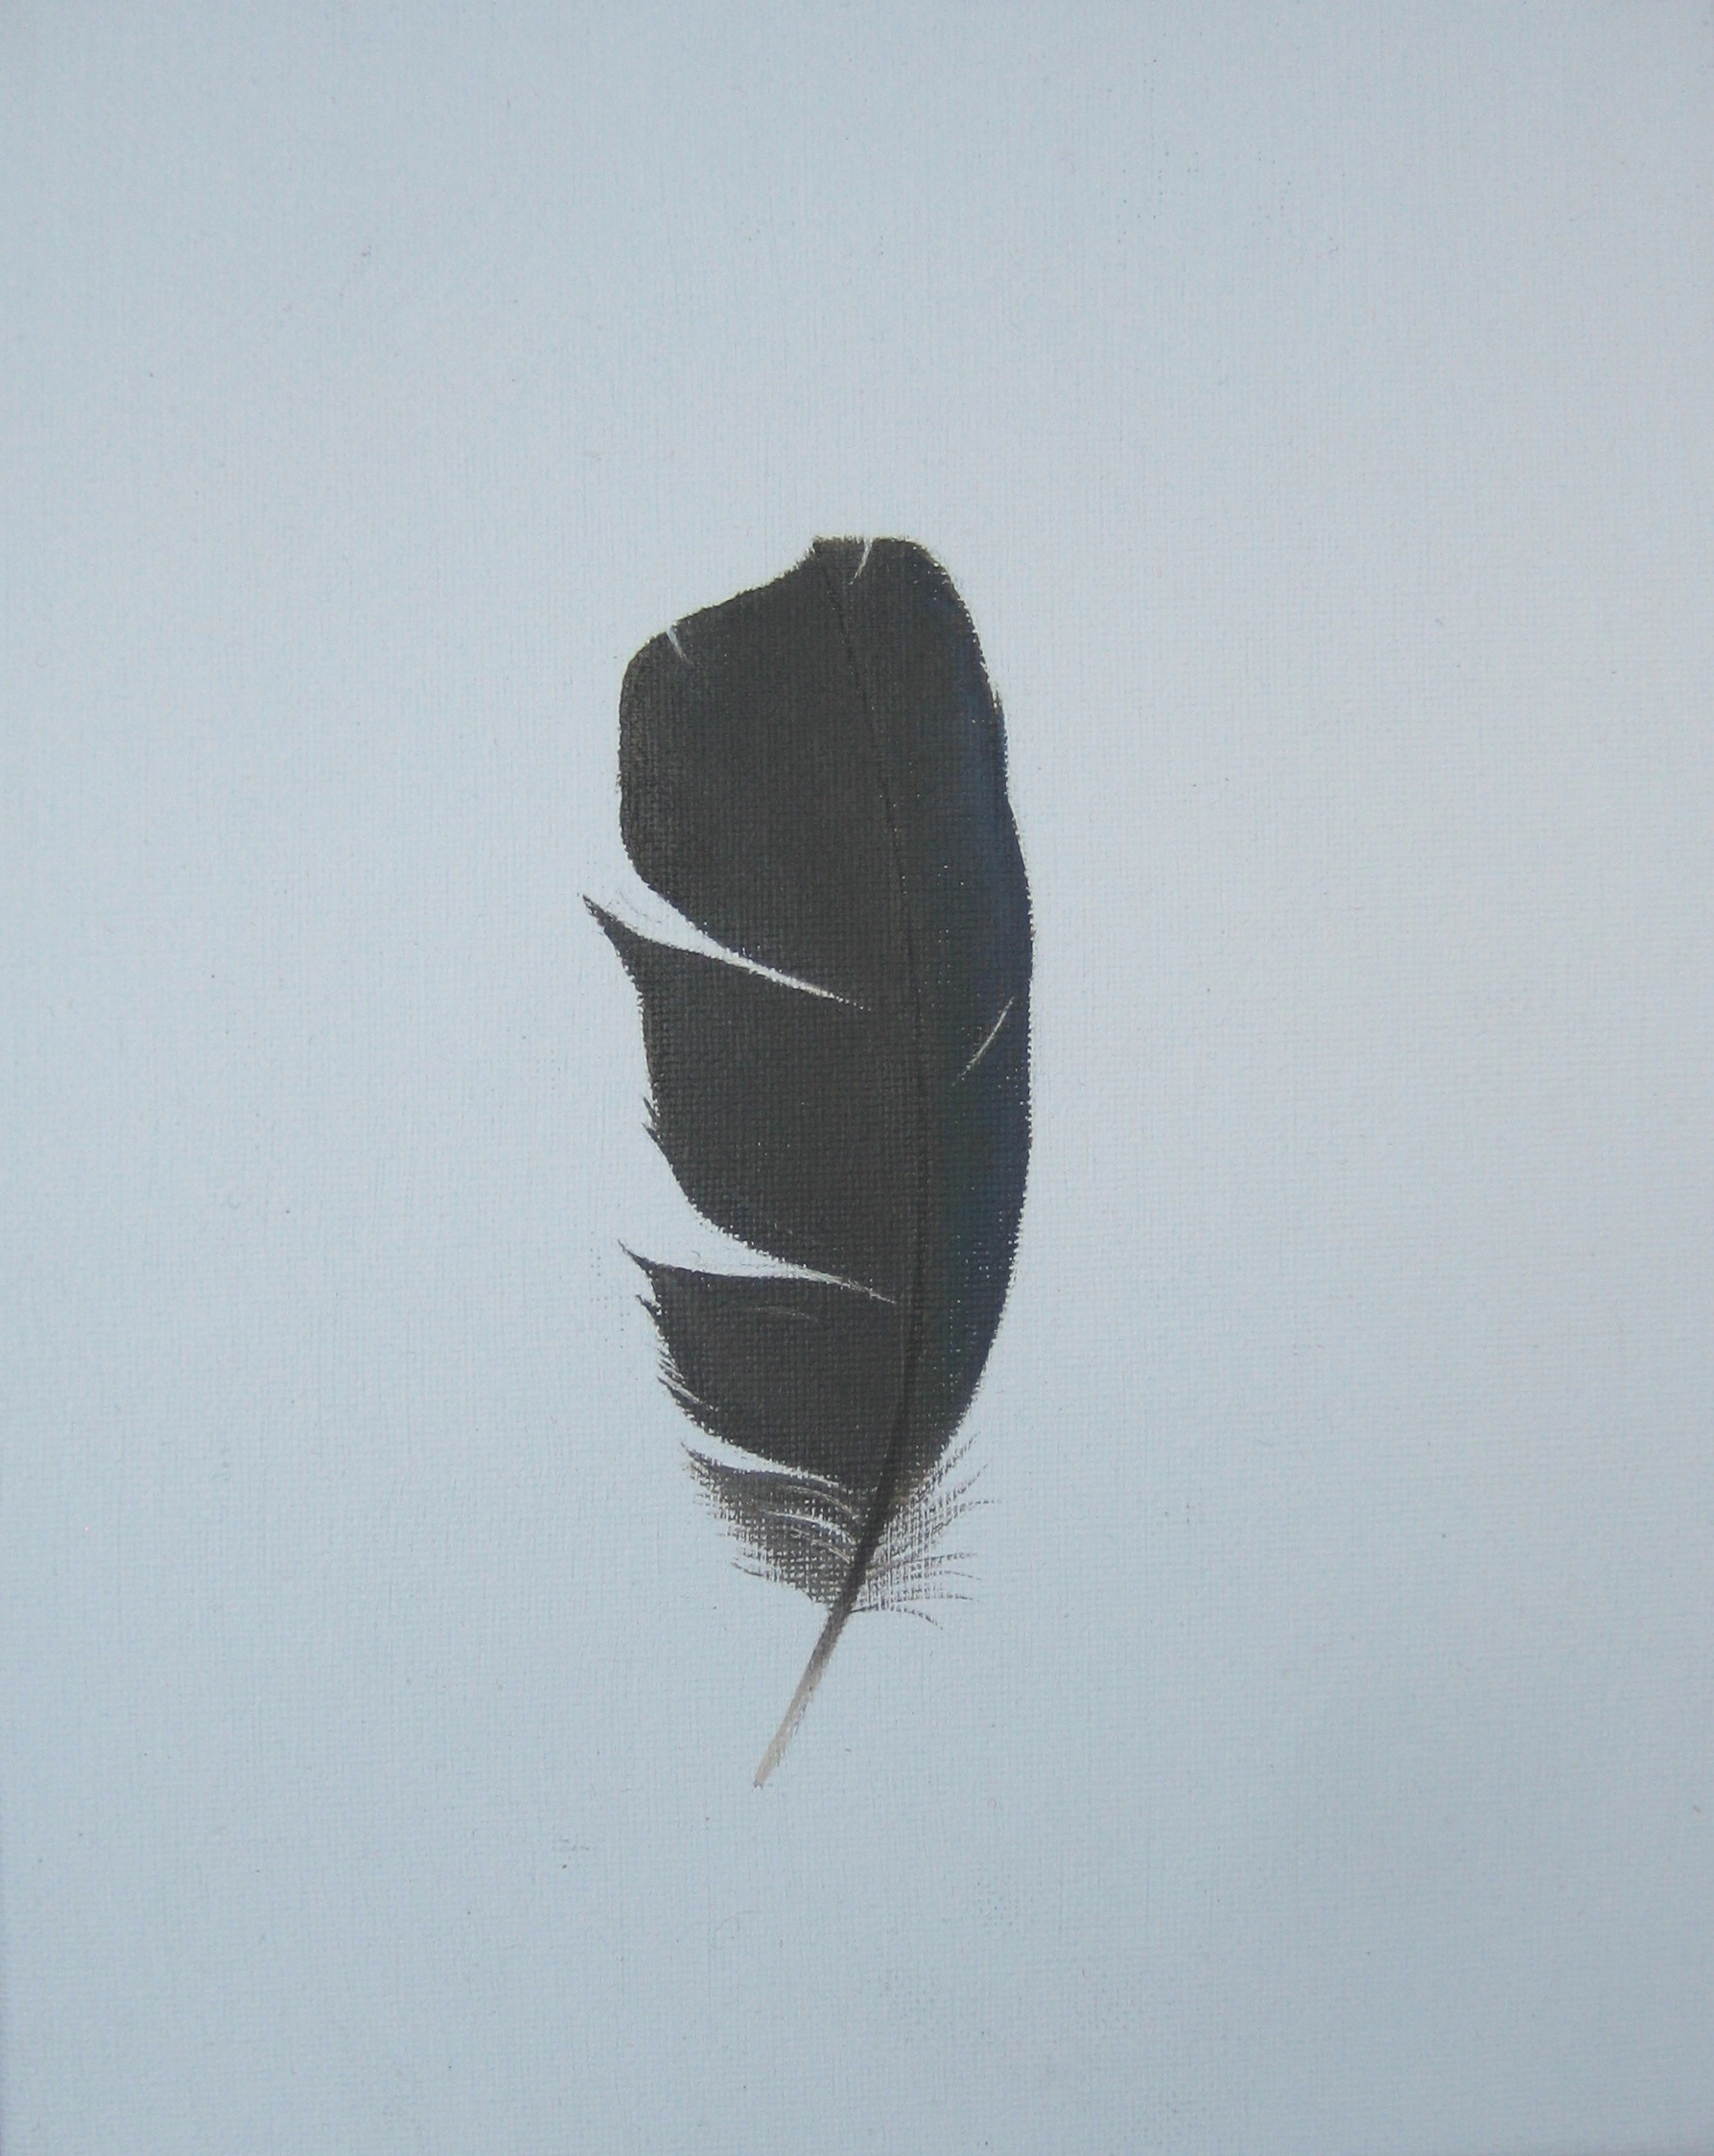 RUFFLED IRIDESCENT FEATHER